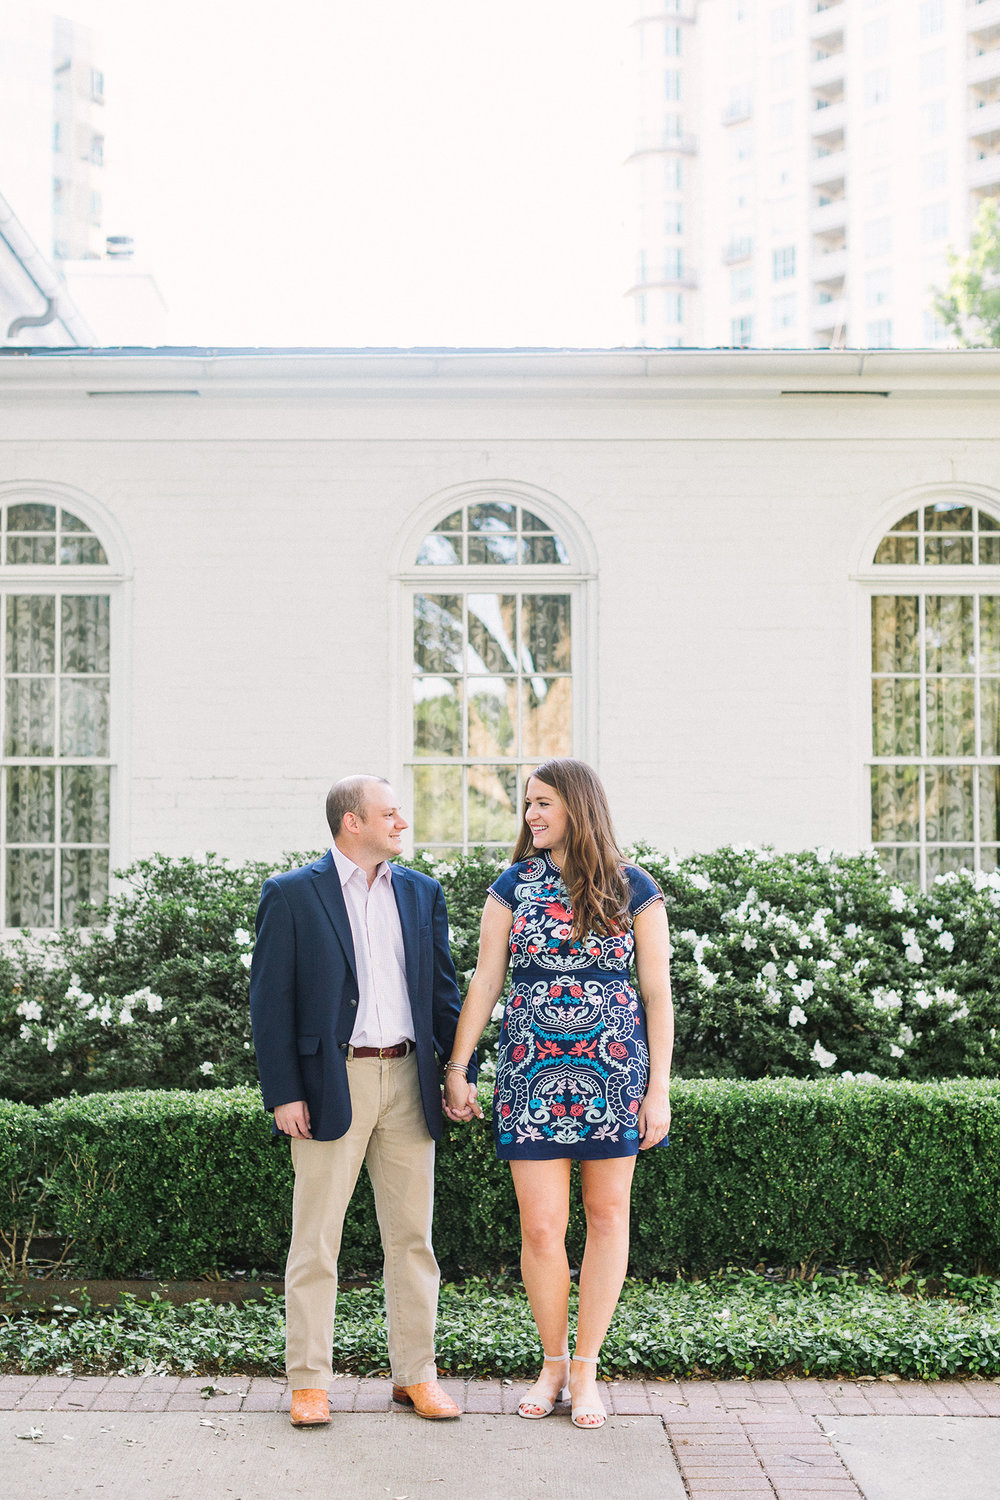 Dallas Wedding Planner | Allday Events | Engagements